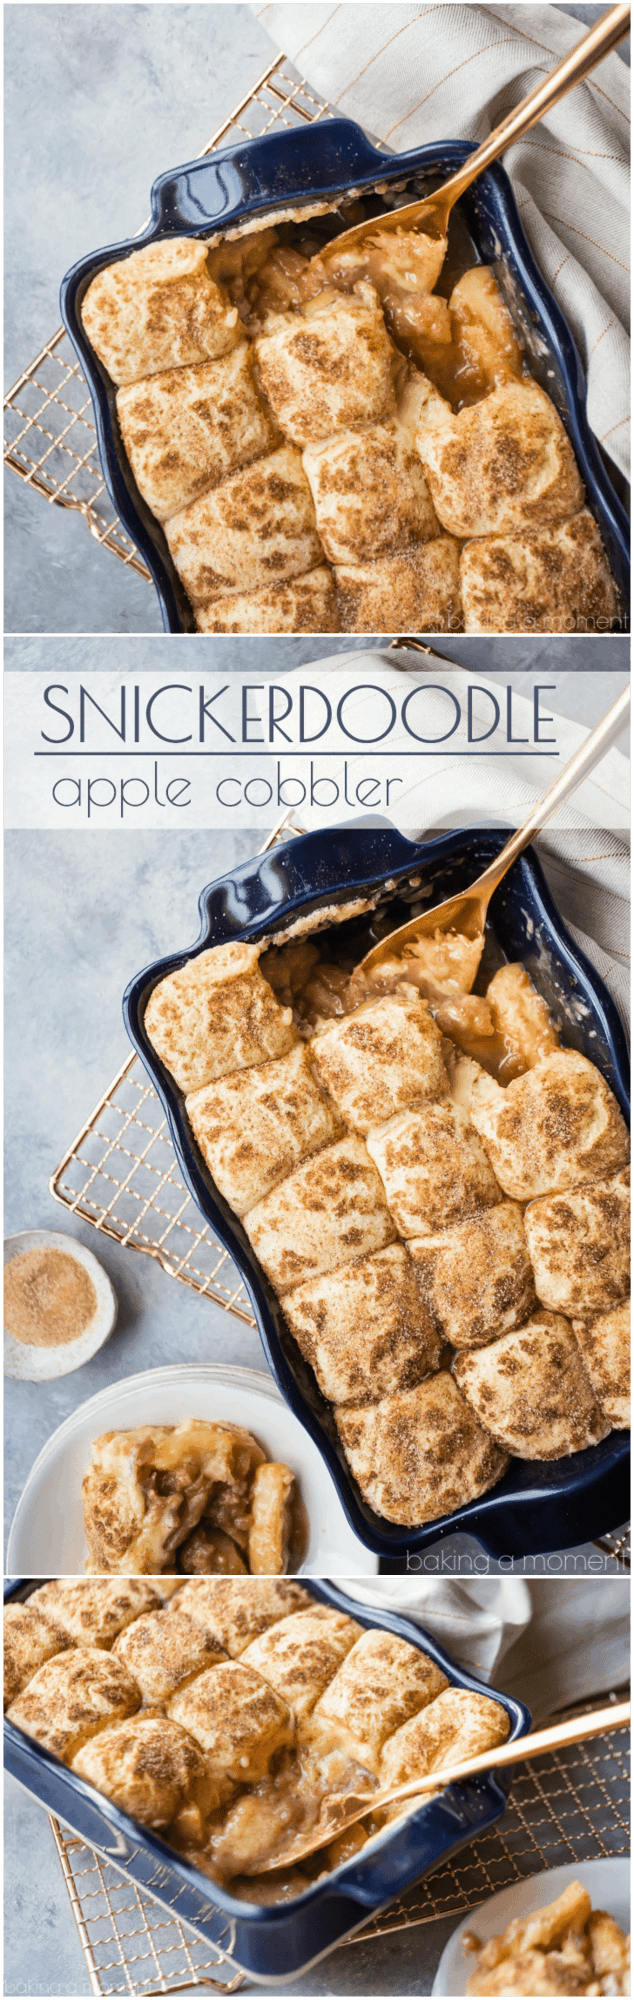 Snickerdoodle Apple Cobbler: soft baked apple filling topped with cinnamon-sugar-y snickerdoodle cookies! This makes your whole house smell amazing! #food #desserts #apple #cinnamon #comfortfood #baking